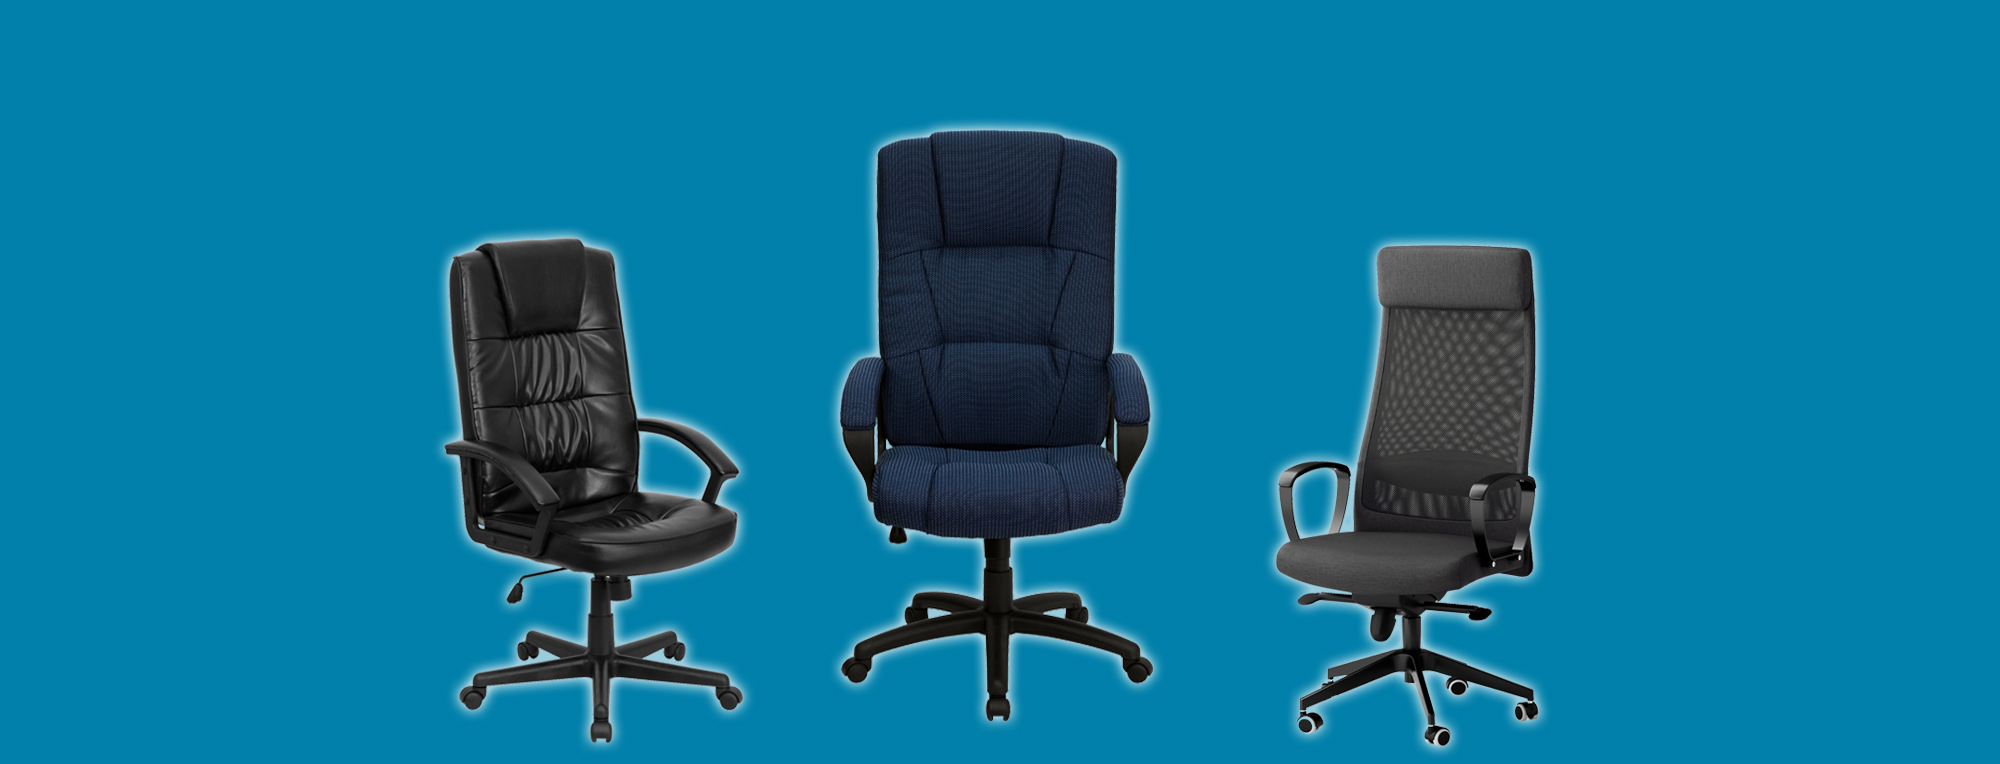 Office chairs in sri lanka - Modern Office Chairs